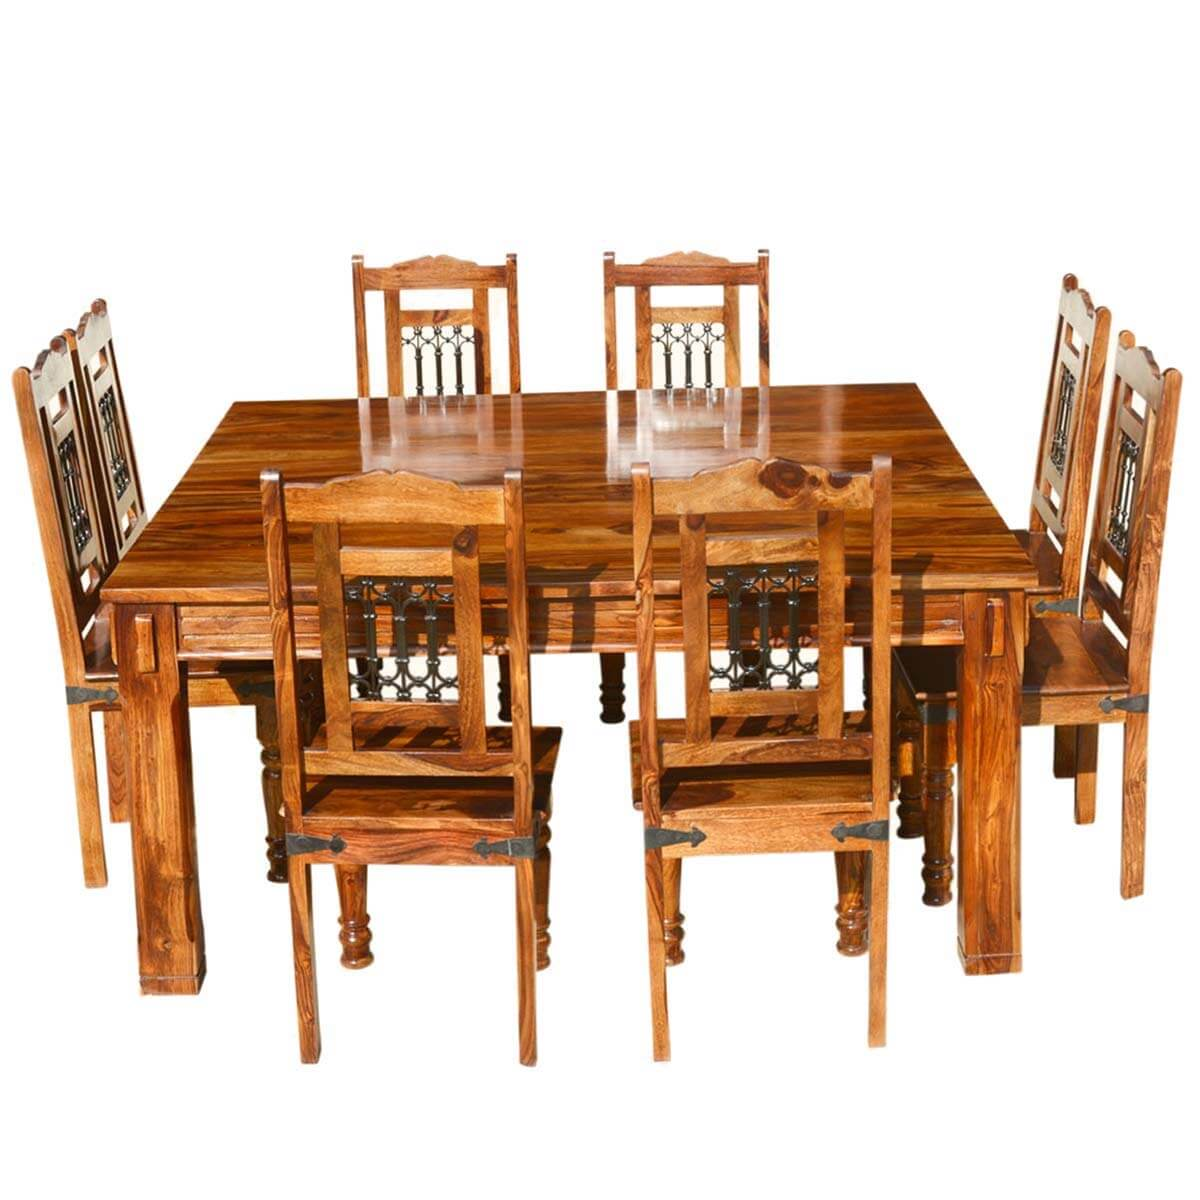 Solid Wood Rustic Square Dining Table Chairs Set